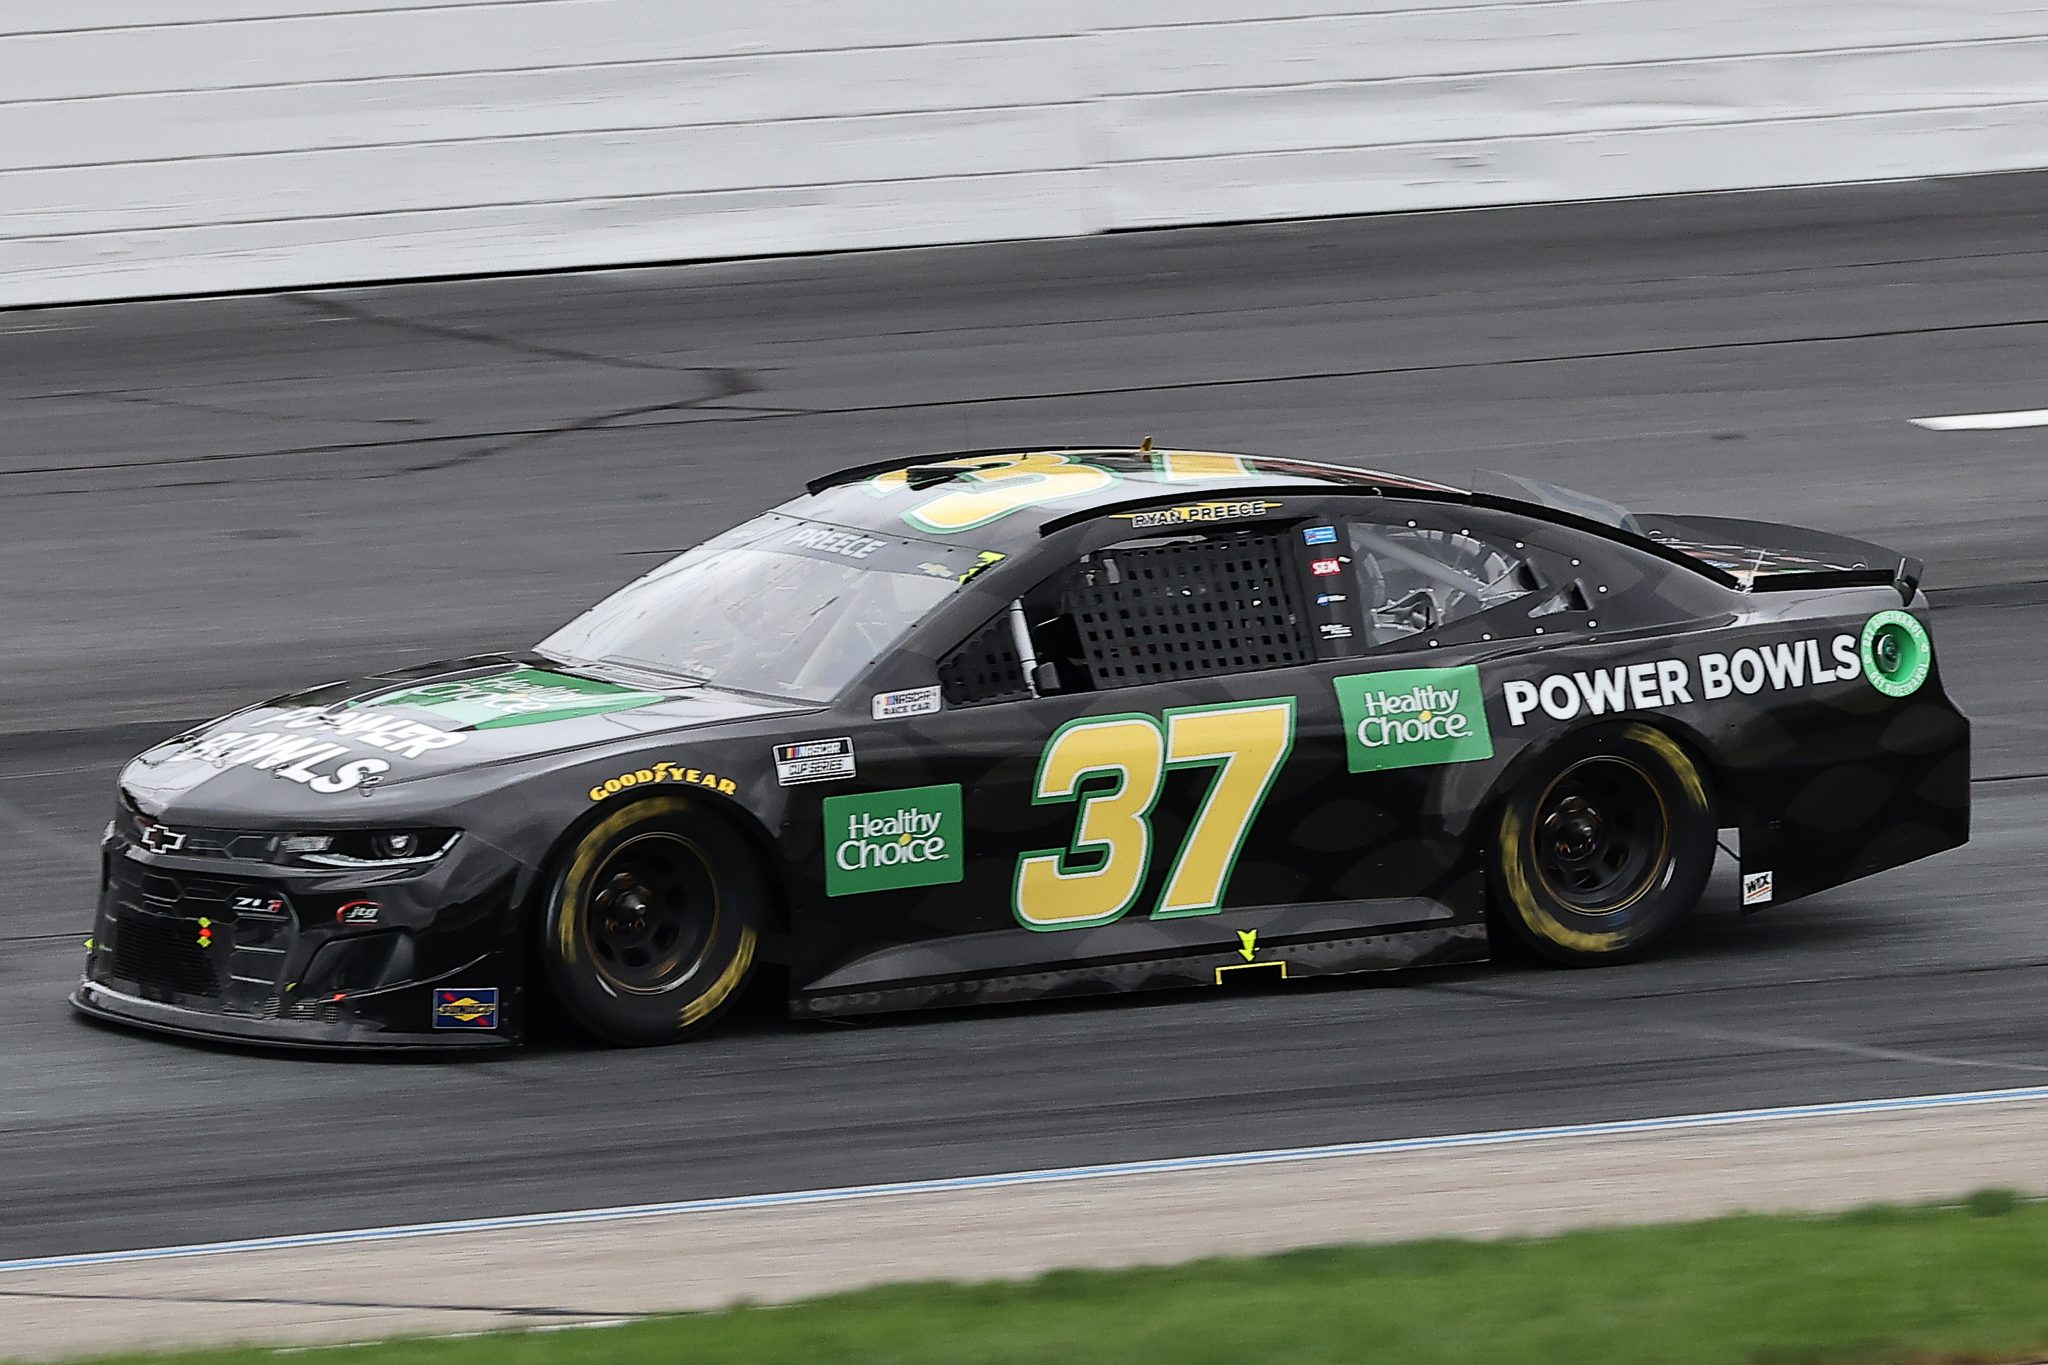 LOUDON, NEW HAMPSHIRE - JULY 18: Ryan Preece, driver of the #37 Healthy Choice Power Bowls Chevrolet, drives during the NASCAR Cup Series Foxwoods Resort Casino 301 at New Hampshire Motor Speedway on July 18, 2021 in Loudon, New Hampshire. (Photo by James Gilbert/Getty Images) | Getty Images